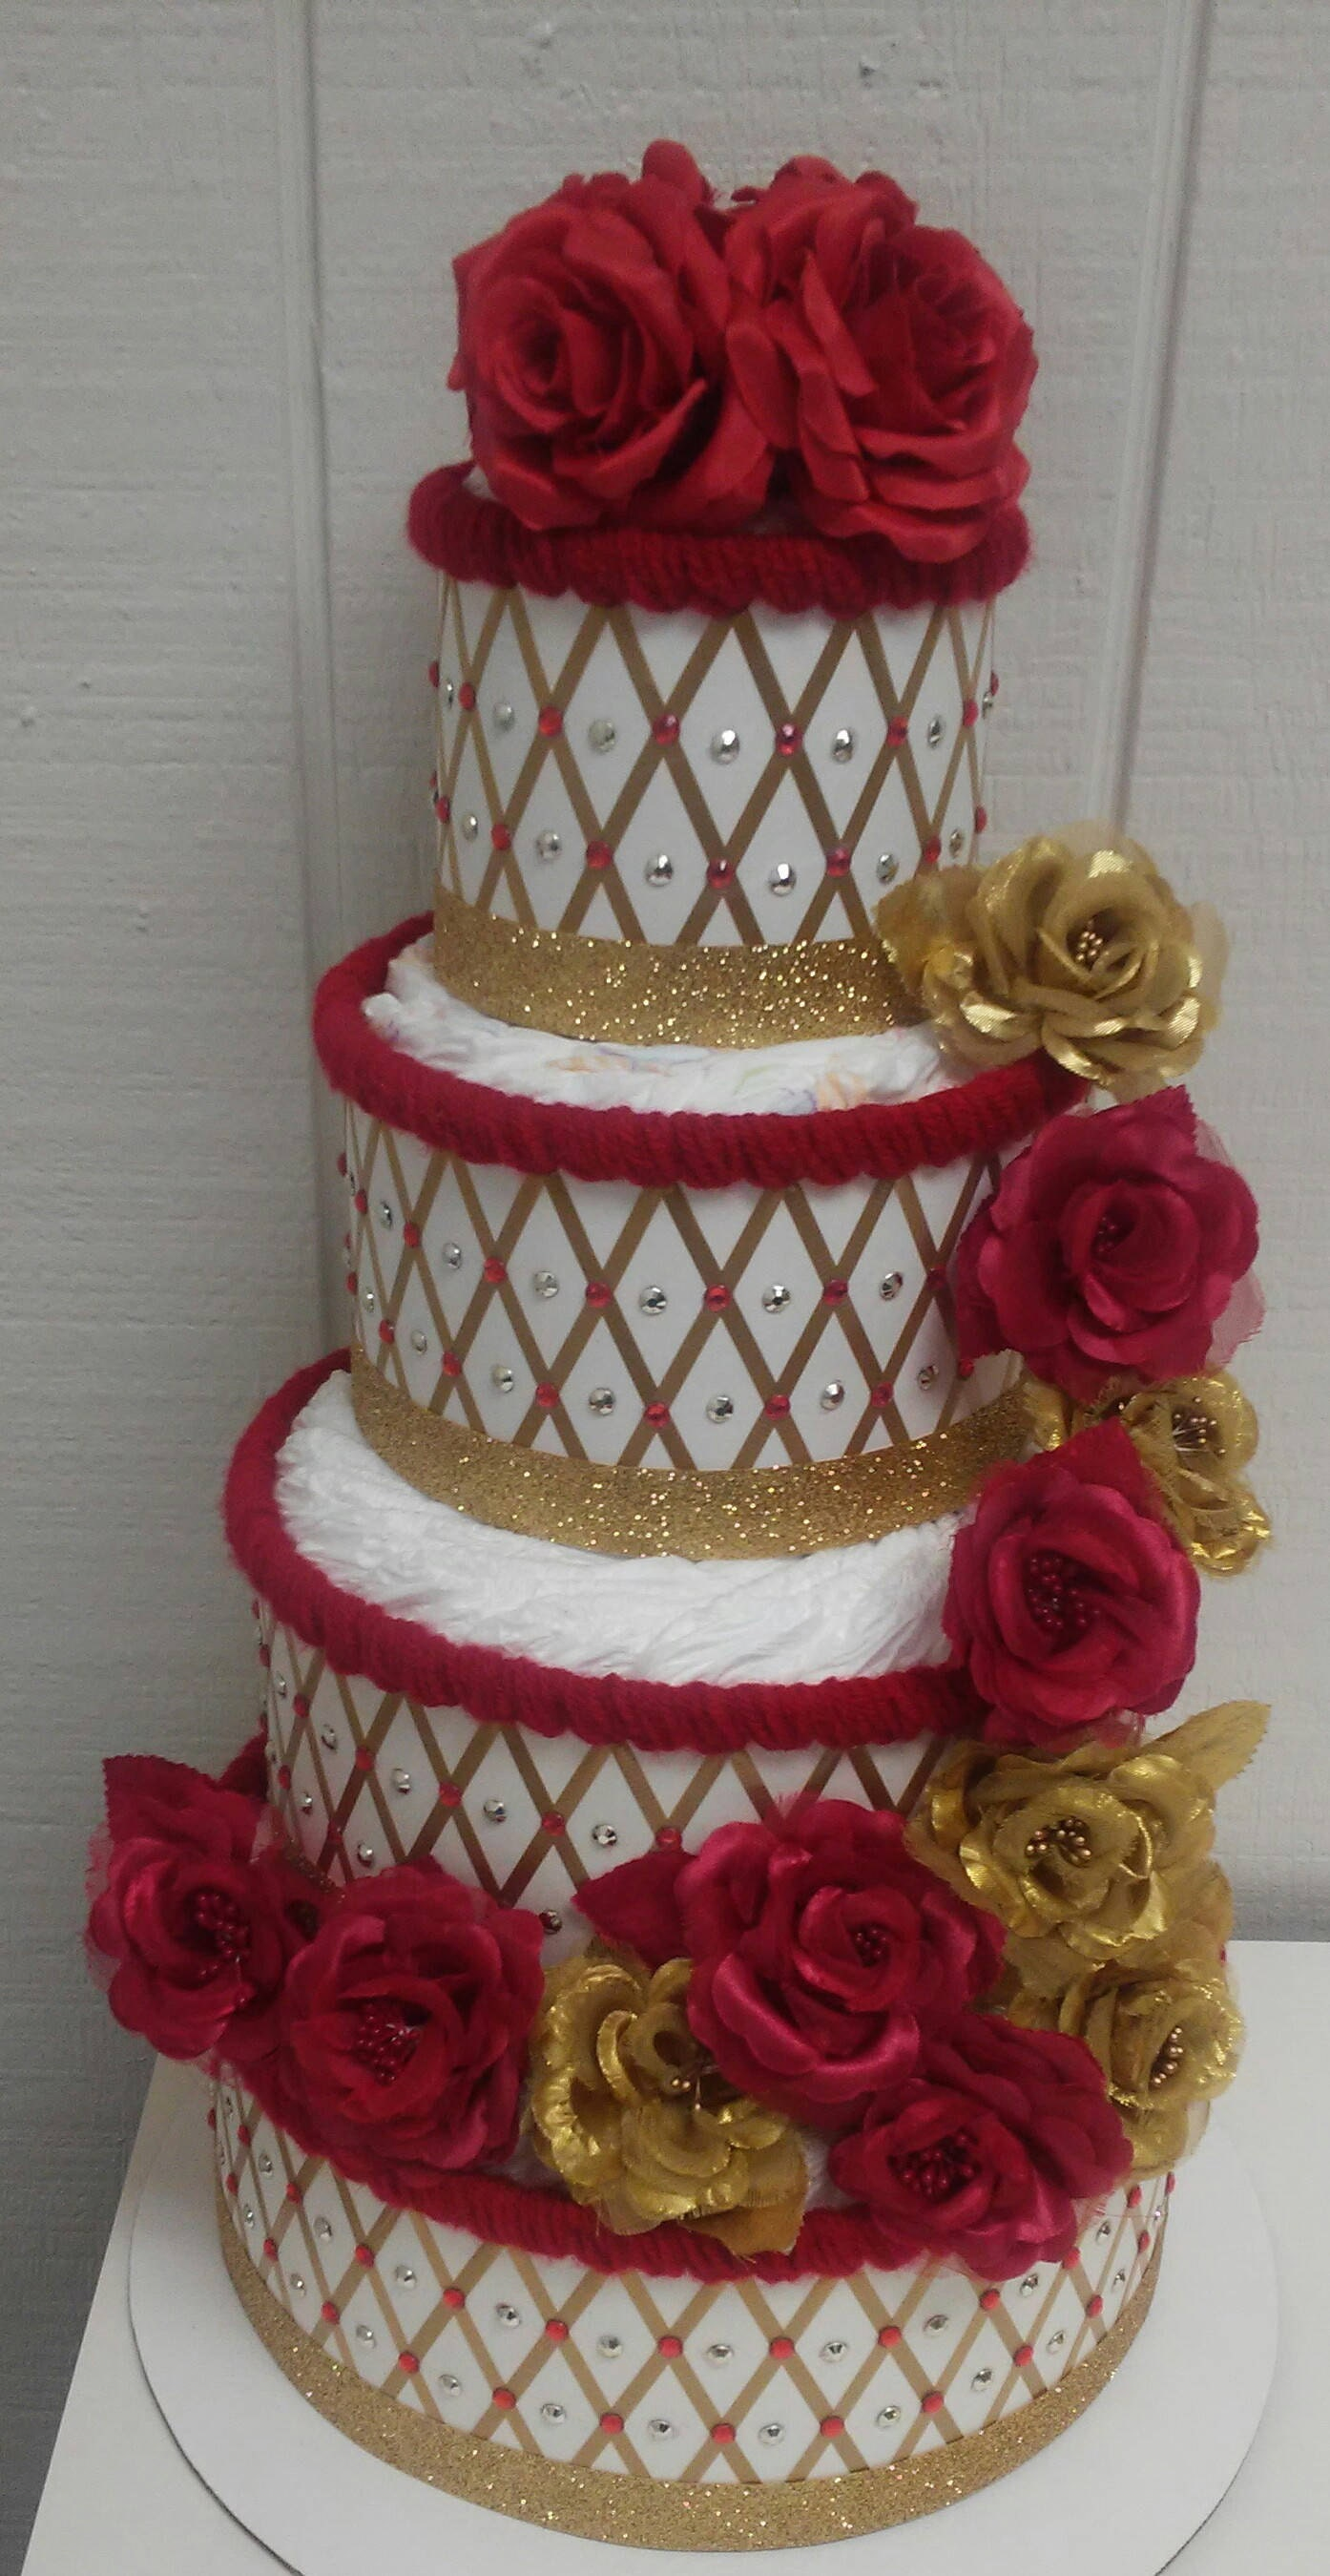 Beauty And The Beast Red And Gold Roses Themed Princess Baby Shower Decor ,  4 Tier